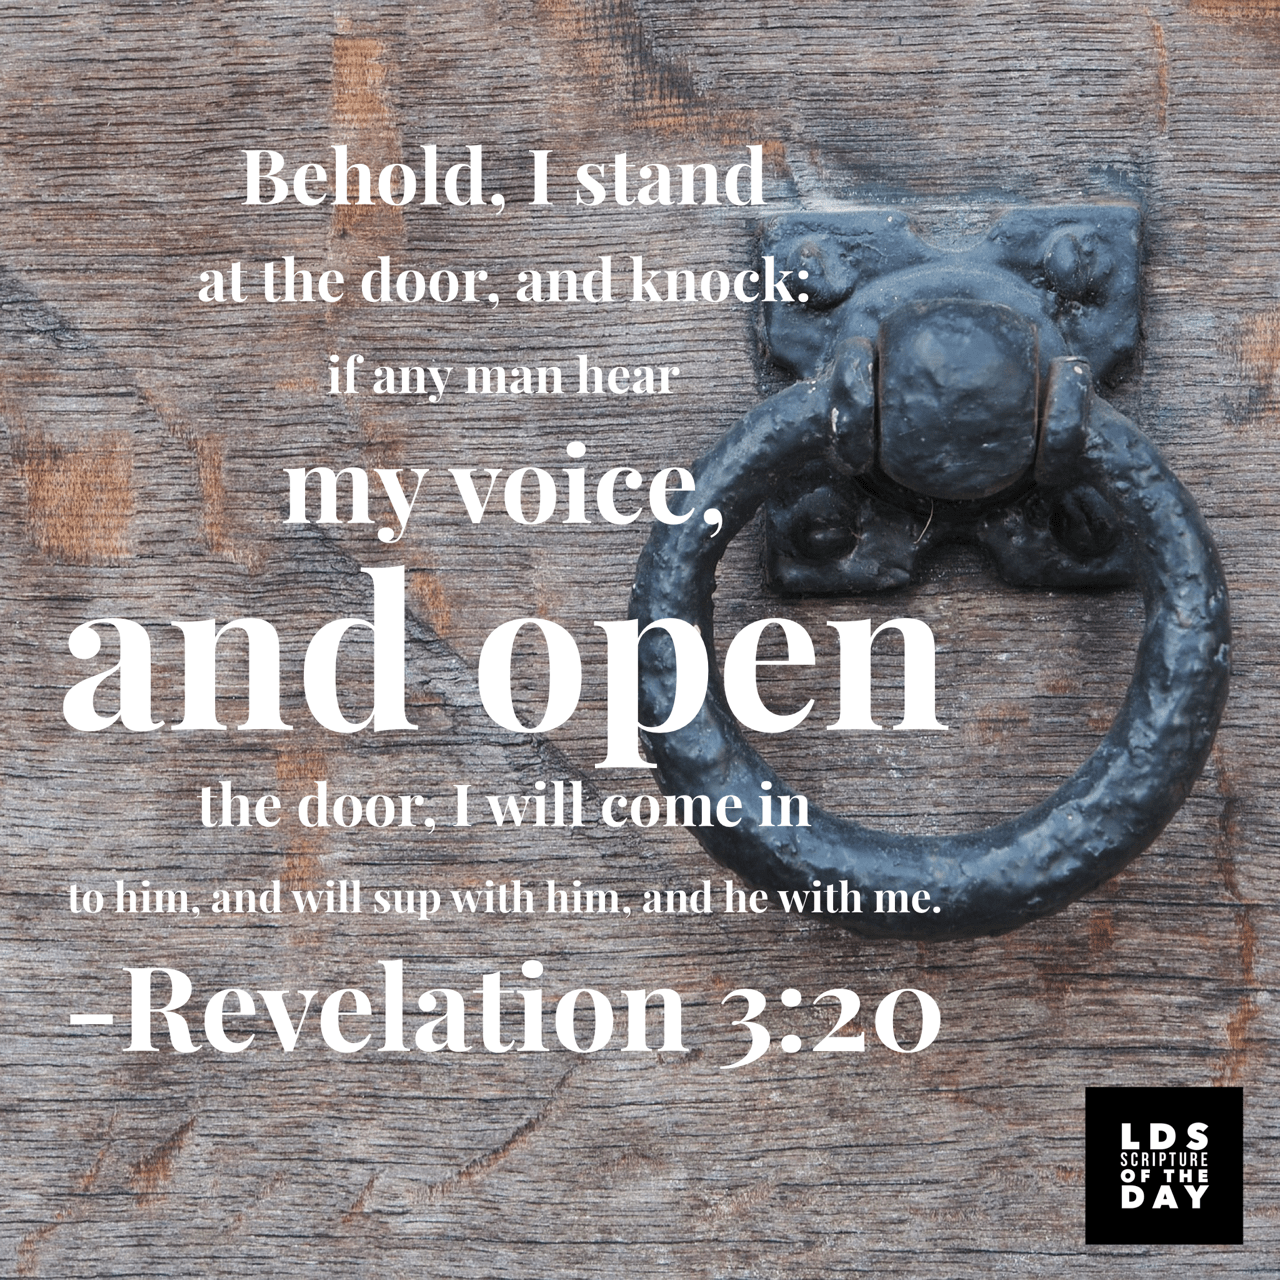 Behold, I stand at the door, and knock: if any man hear my voice, and open the door, I will come in to him, and will sup with him, and he with me. Revelation 3:20